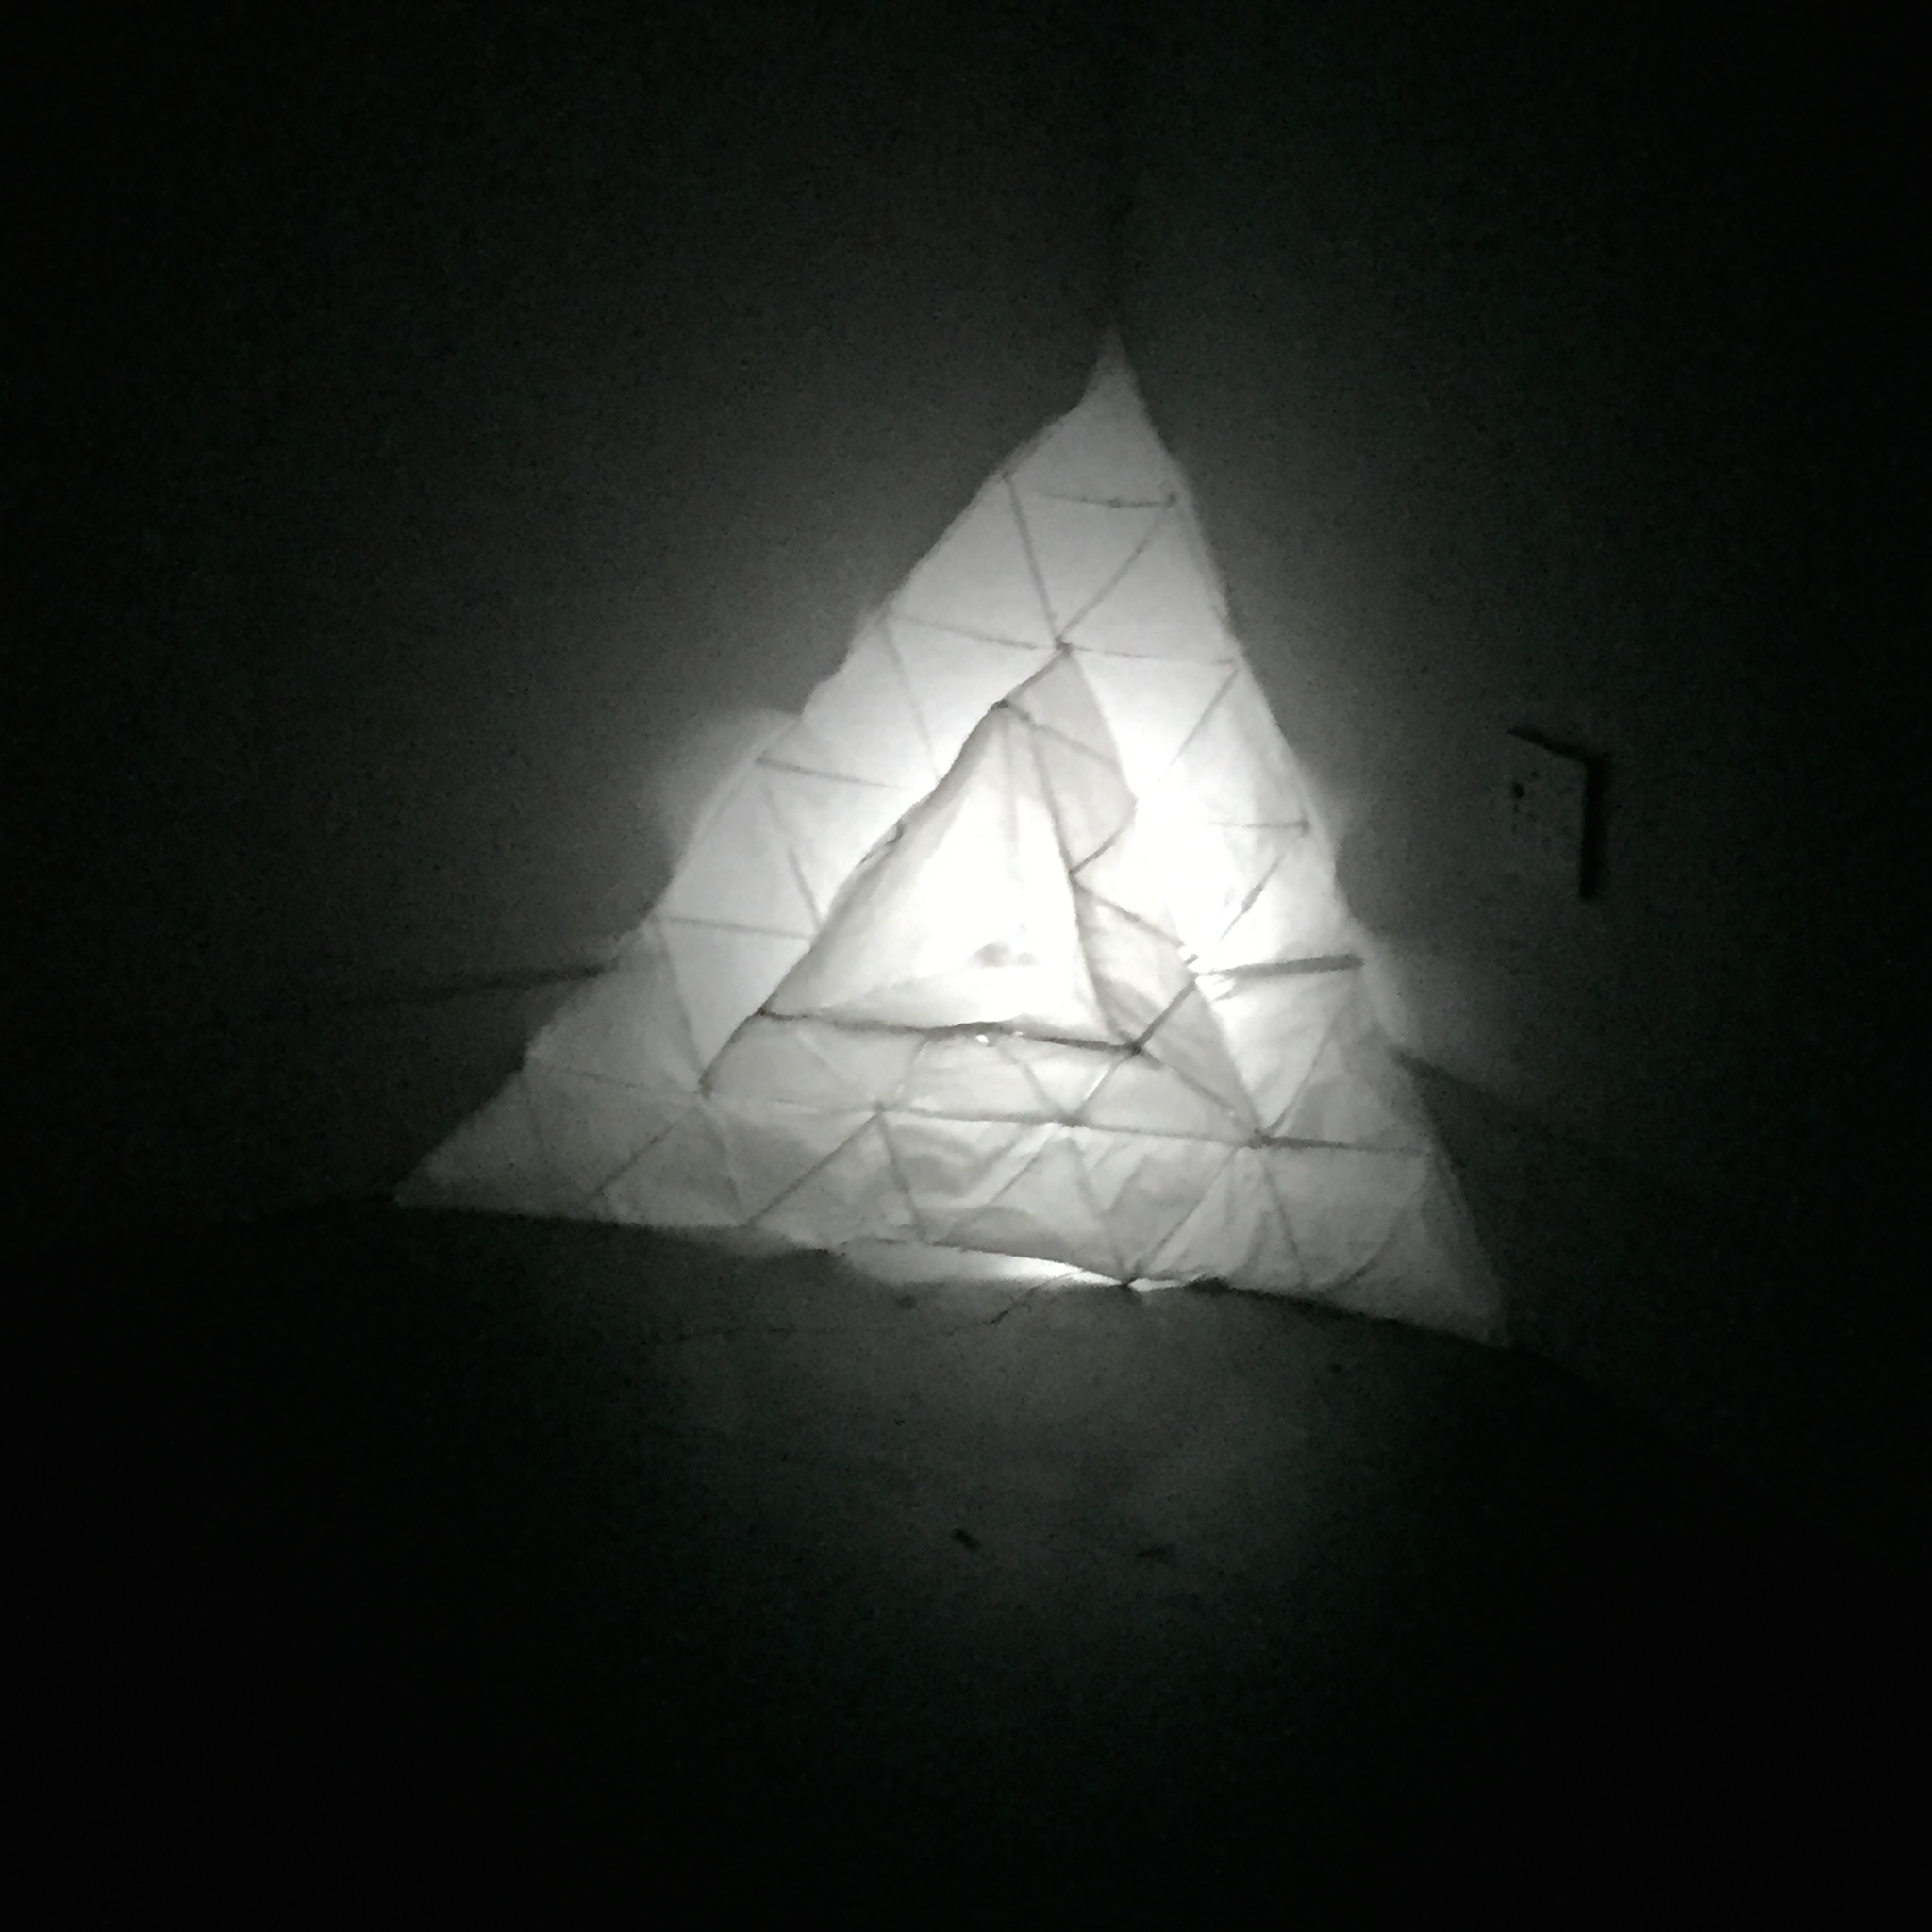 Triangle glow light